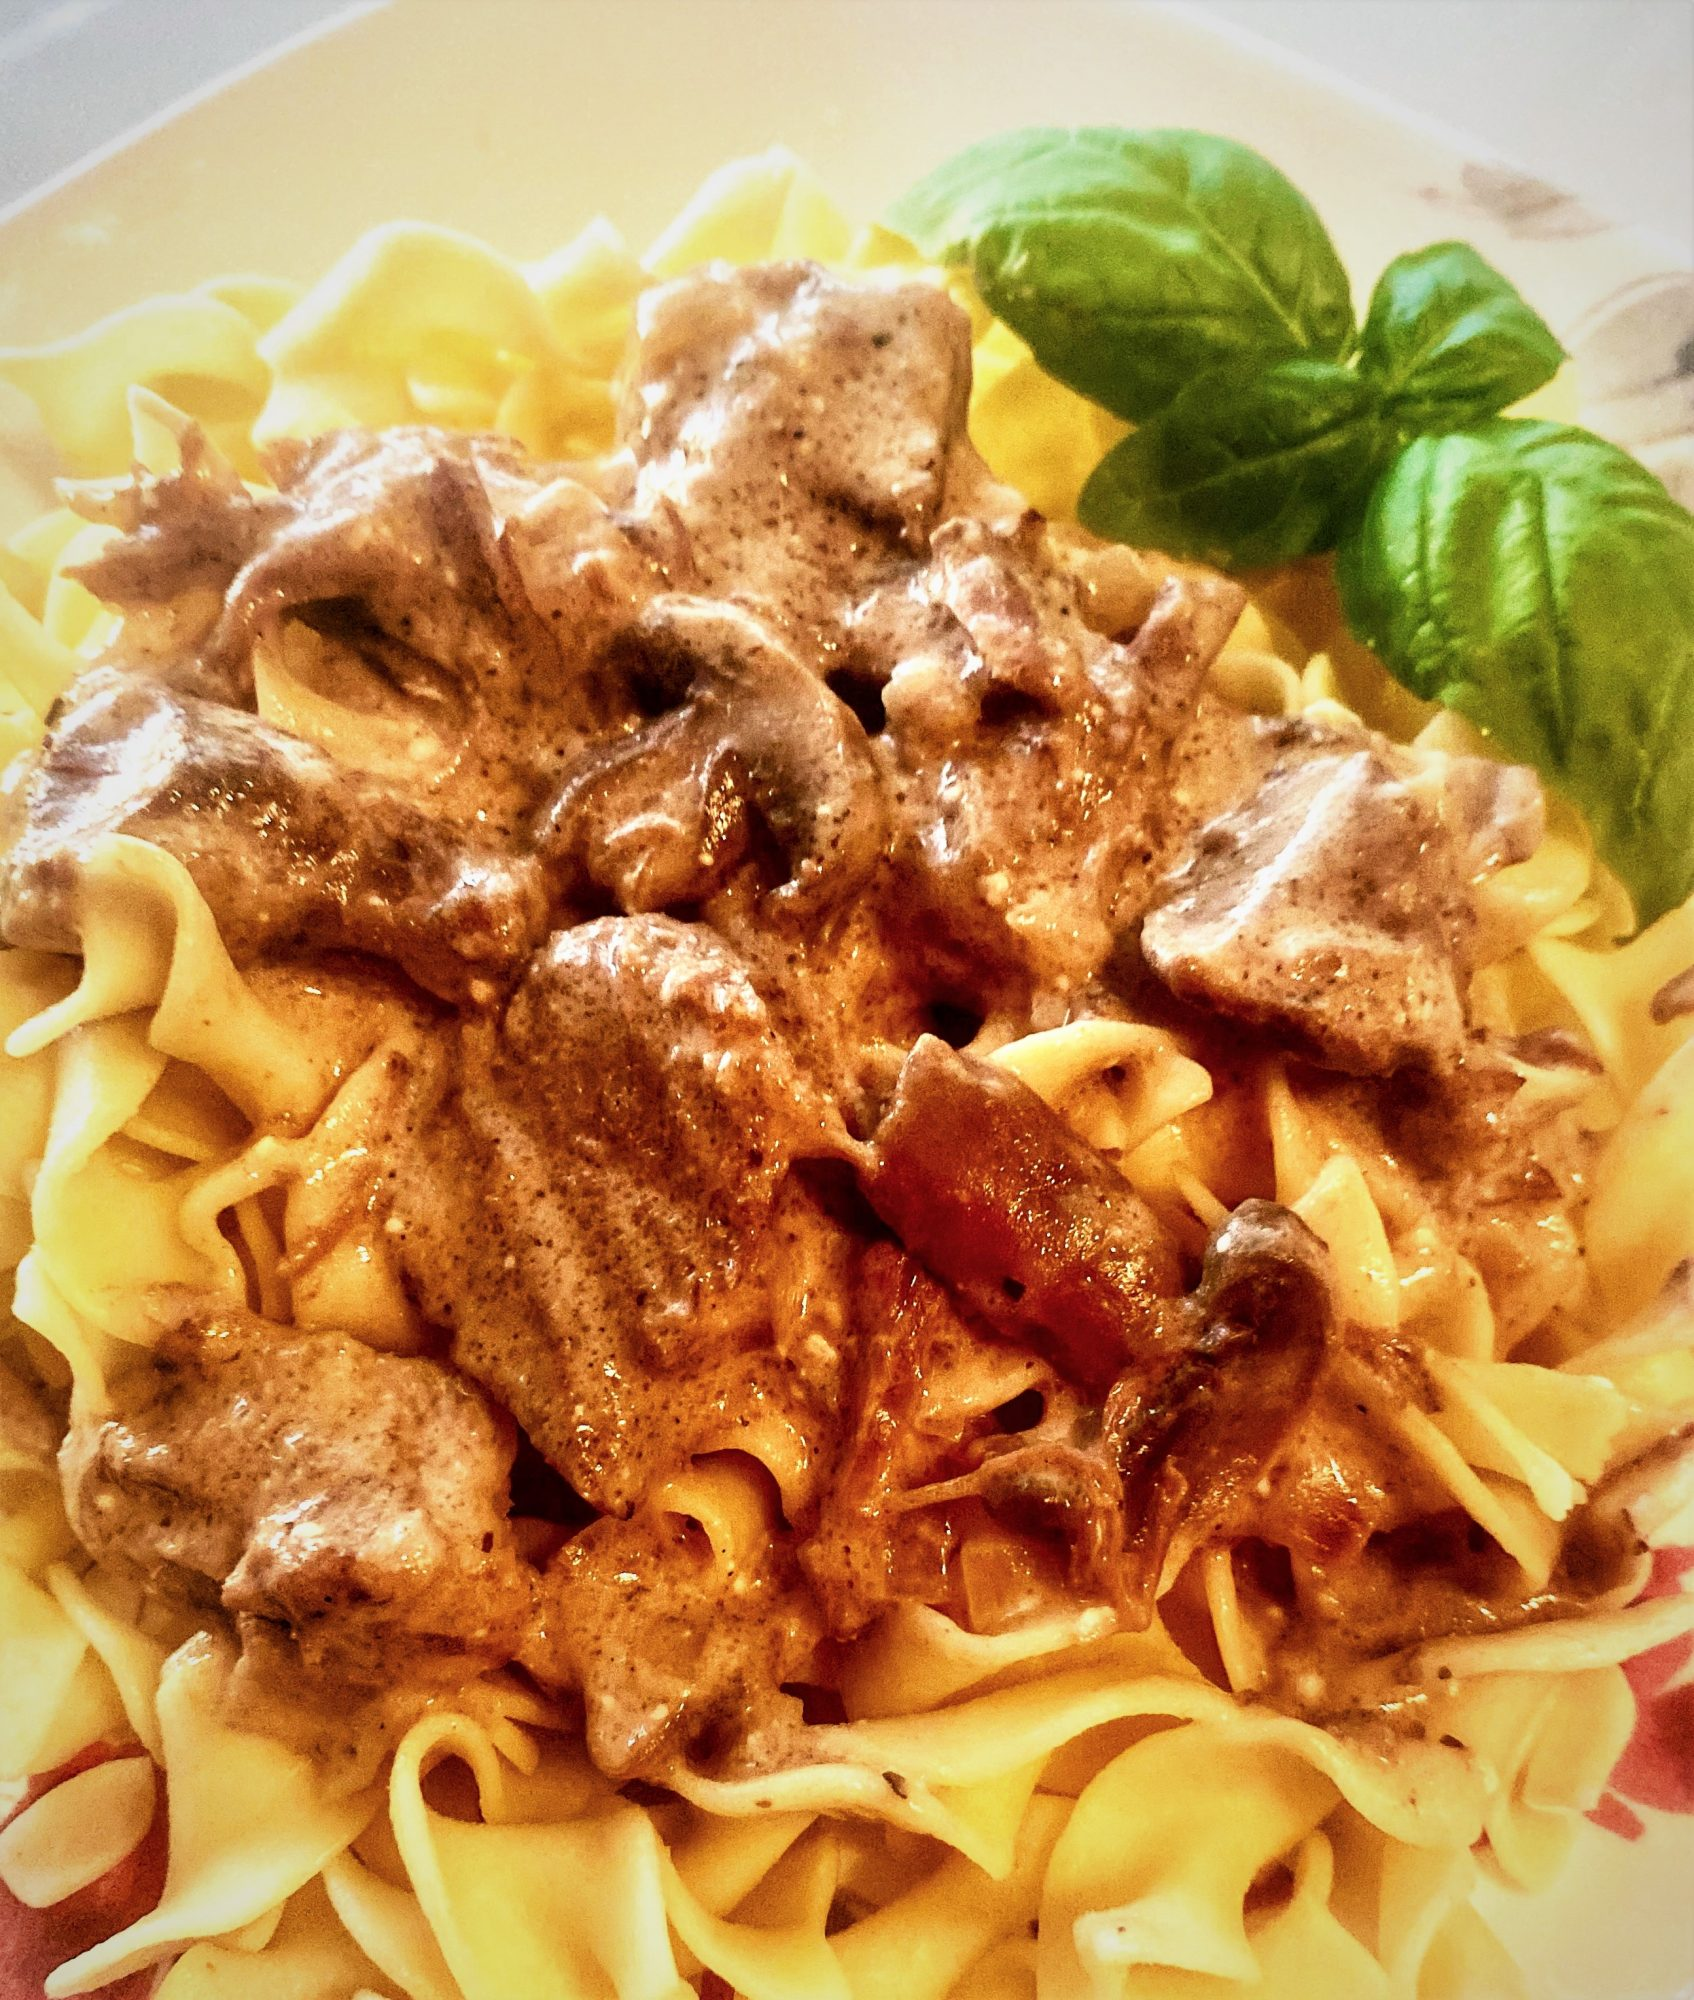 Easy Beef Stroganoff in the Slow Cooker recipe served on egg noodles